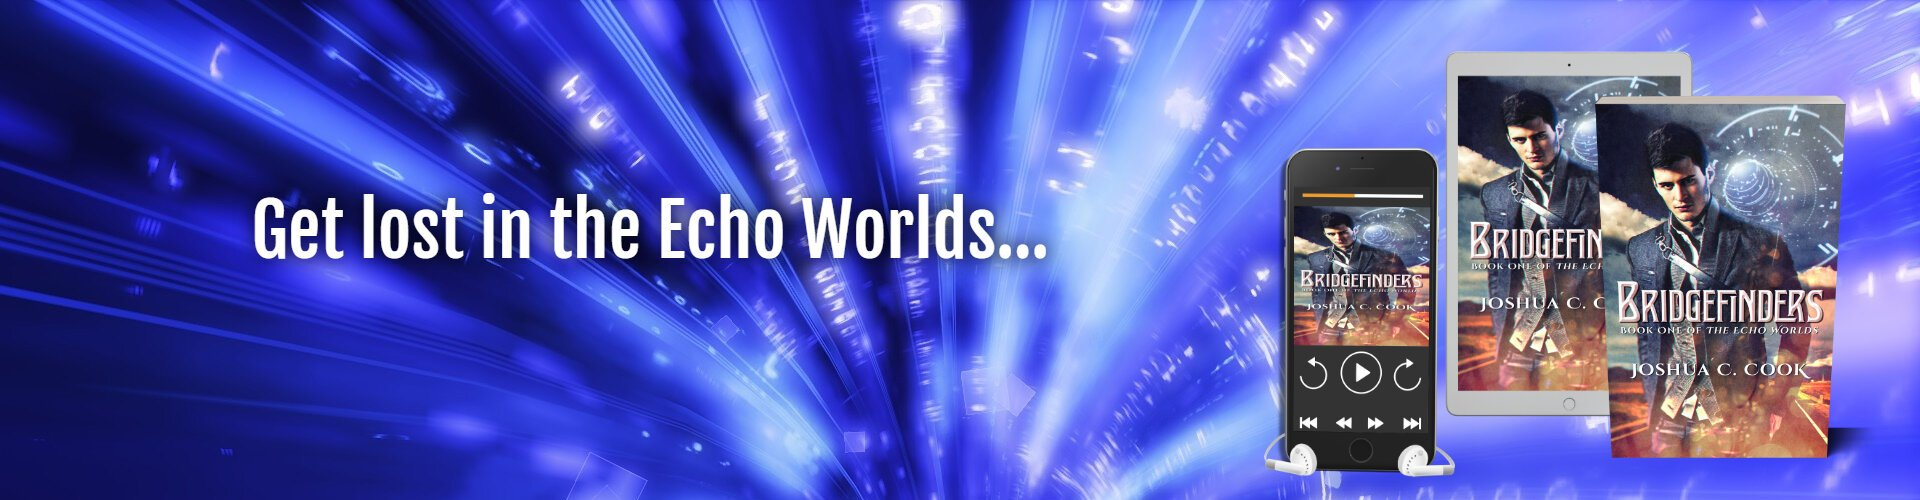 The Echo Worlds Series